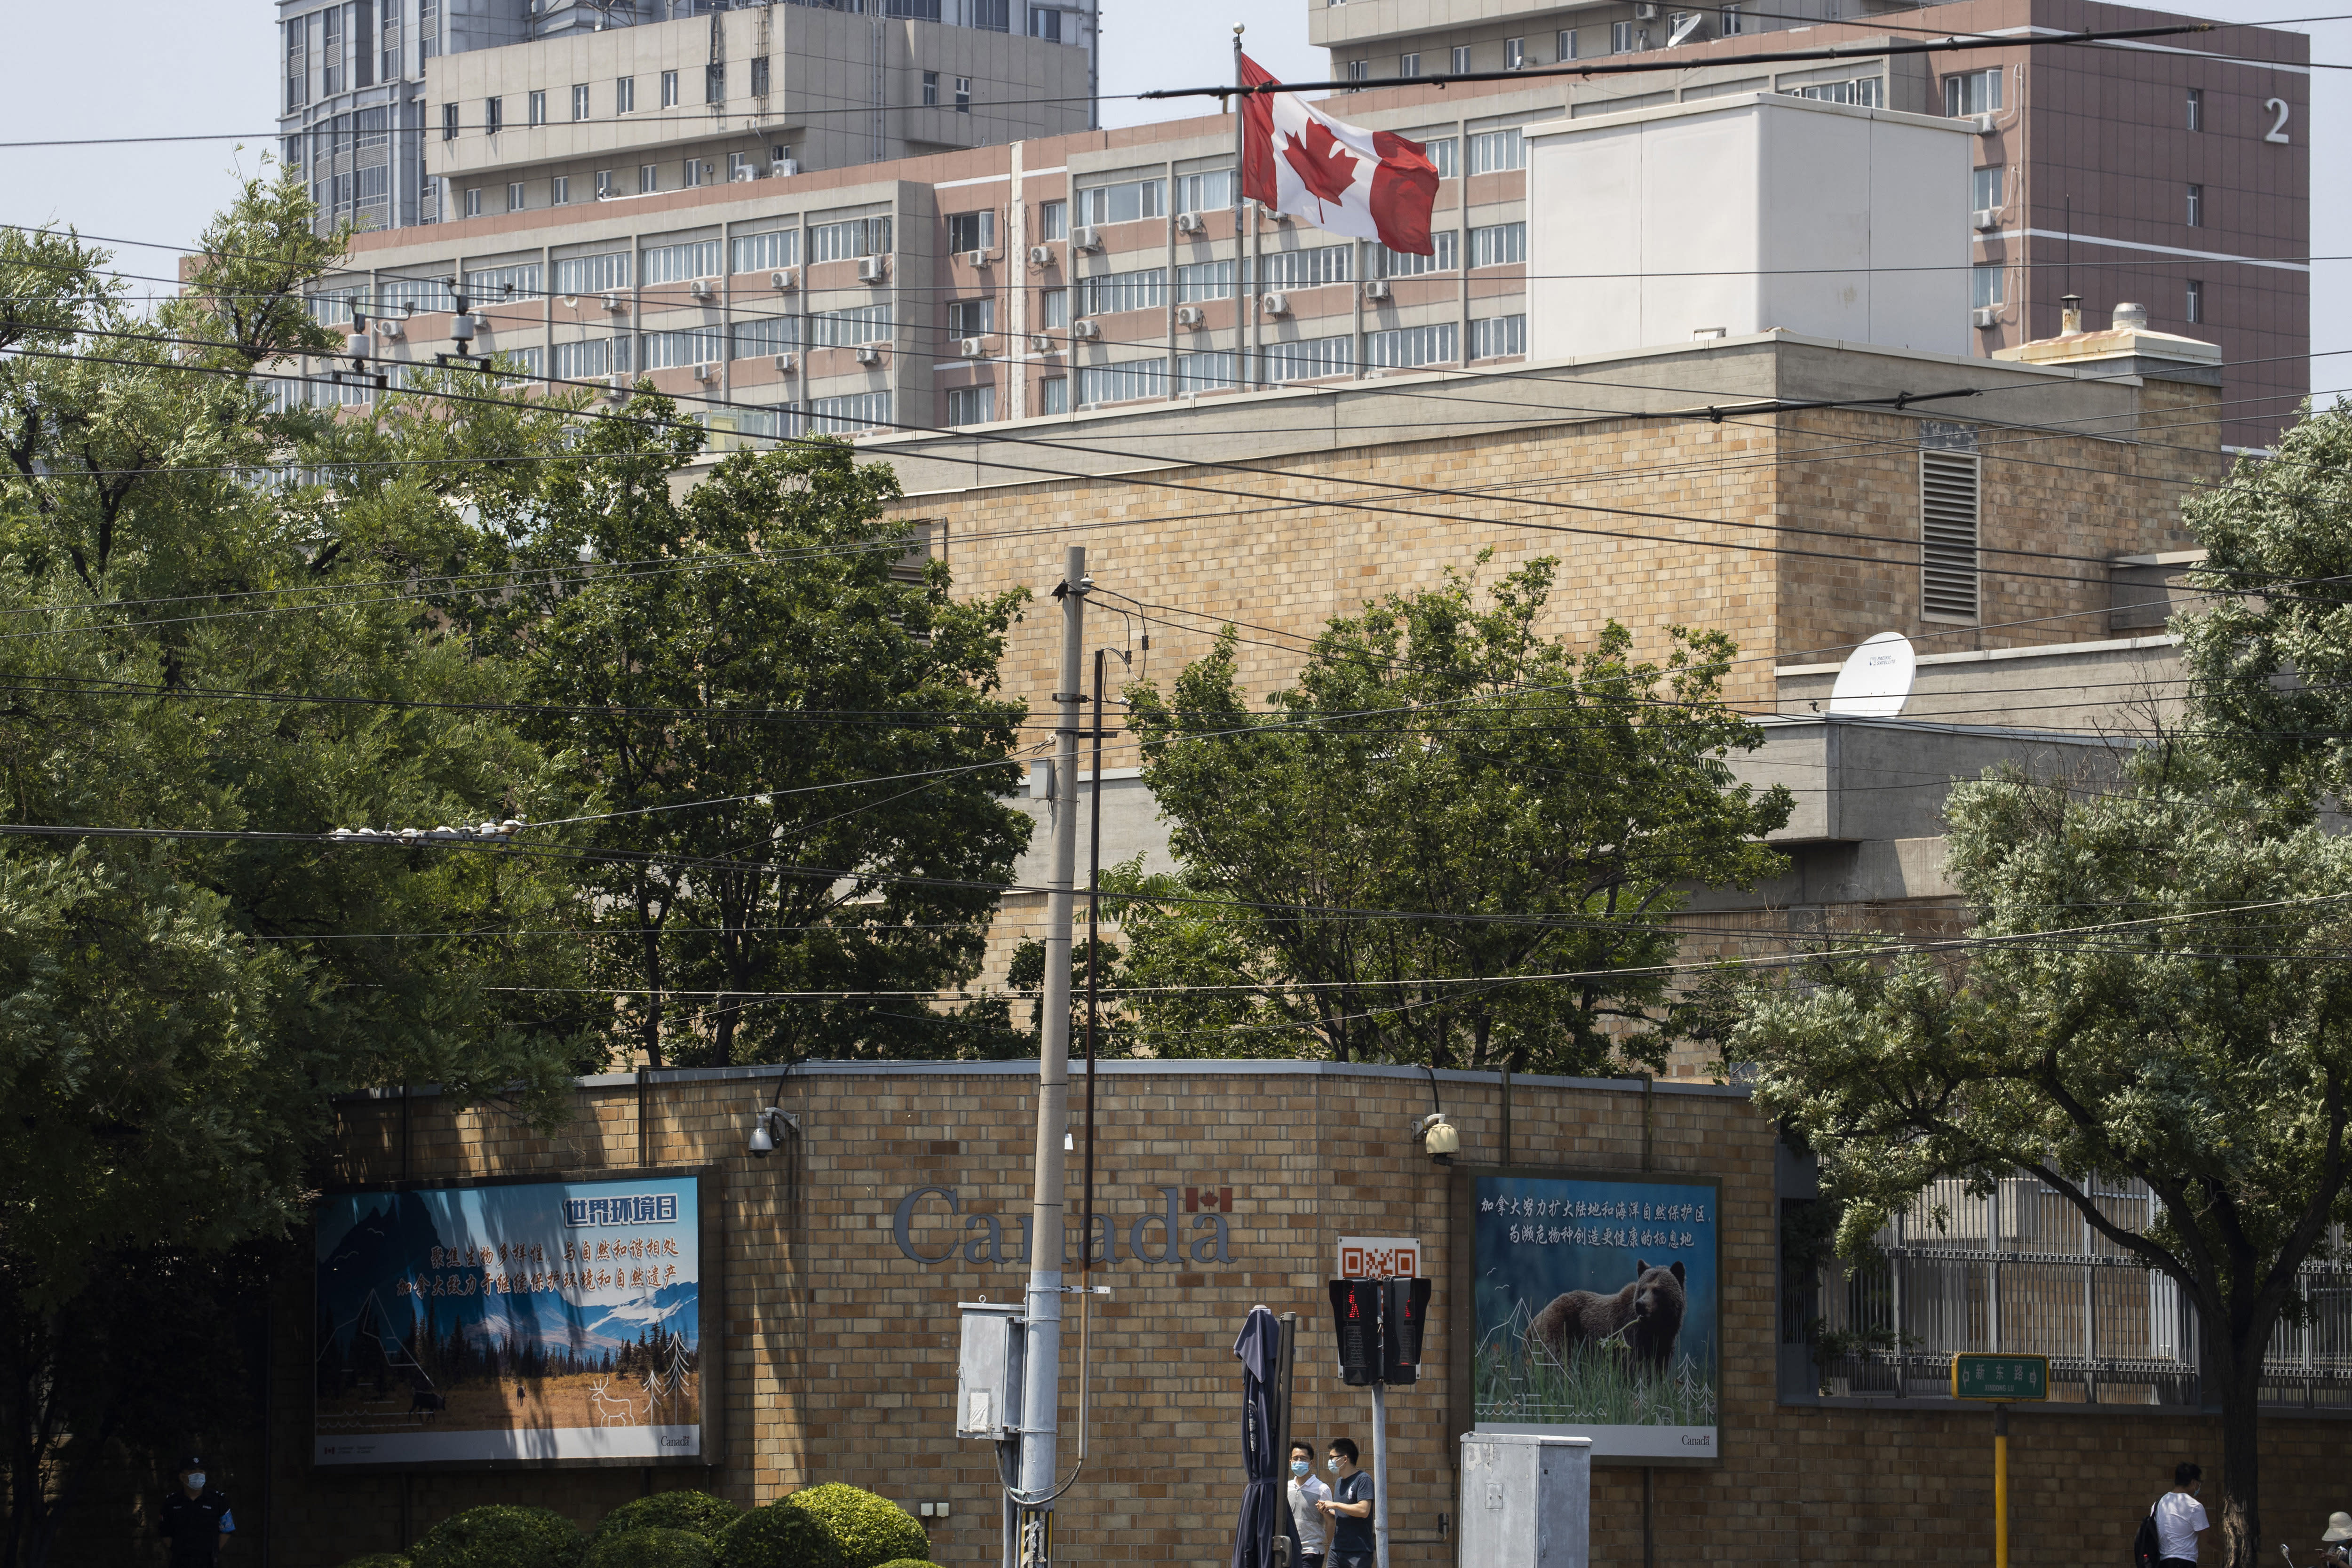 Residents pass by the Canadian Embassy in Beijing on Friday, June 19, 2020. Prosecutors charged two detained Canadians with spying Friday in an apparent bid to step up pressure on Canada to drop a U.S. extradition request for a Huawei executive under house arrest in Vancouver. (AP Photo/Ng Han Guan)